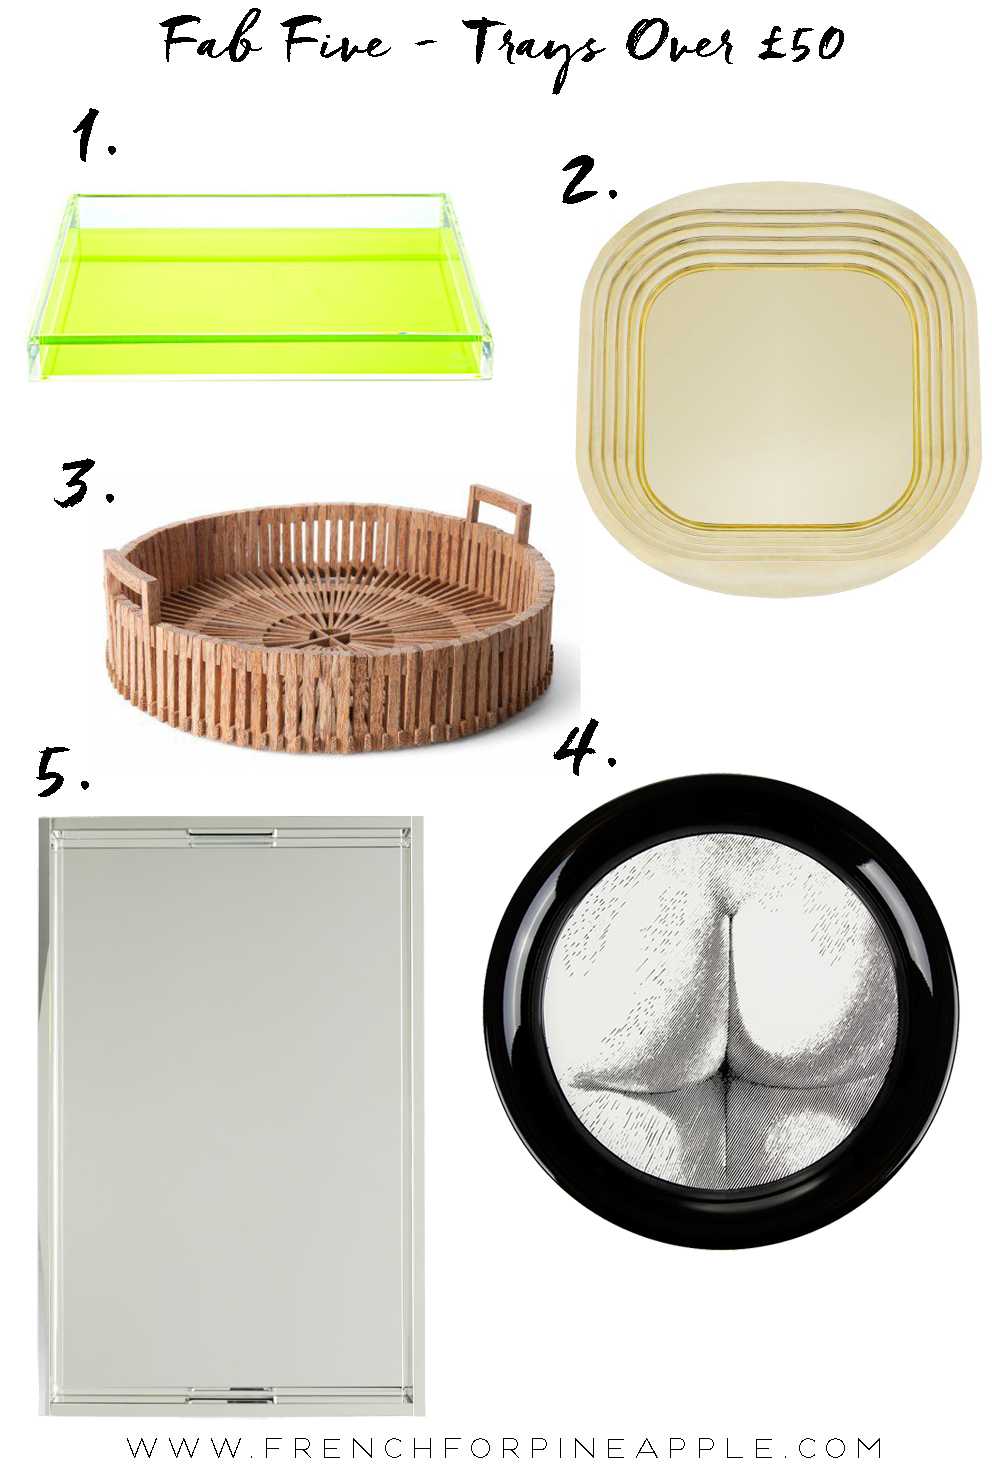 Fab Five Trays - French For Pineapple Blog